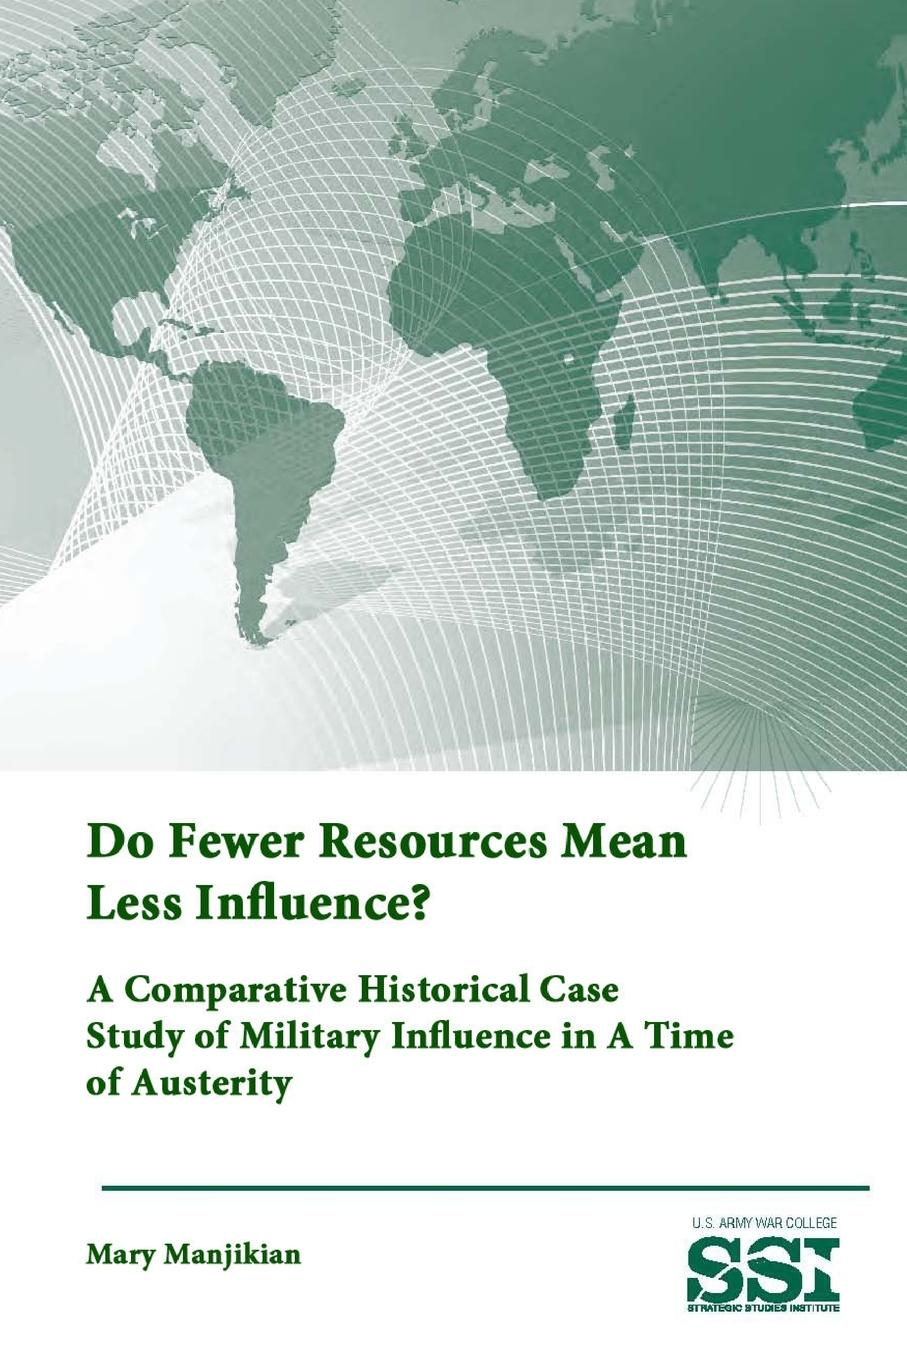 Strategic Studies Institute, U.S. Army War College, Mary Manjikian Do Fewer Resources Mean Less Influence. A Comparative Historical Case Study of Military Influence in A Time of Austerity debtors prison the politics of austerity versus possibility